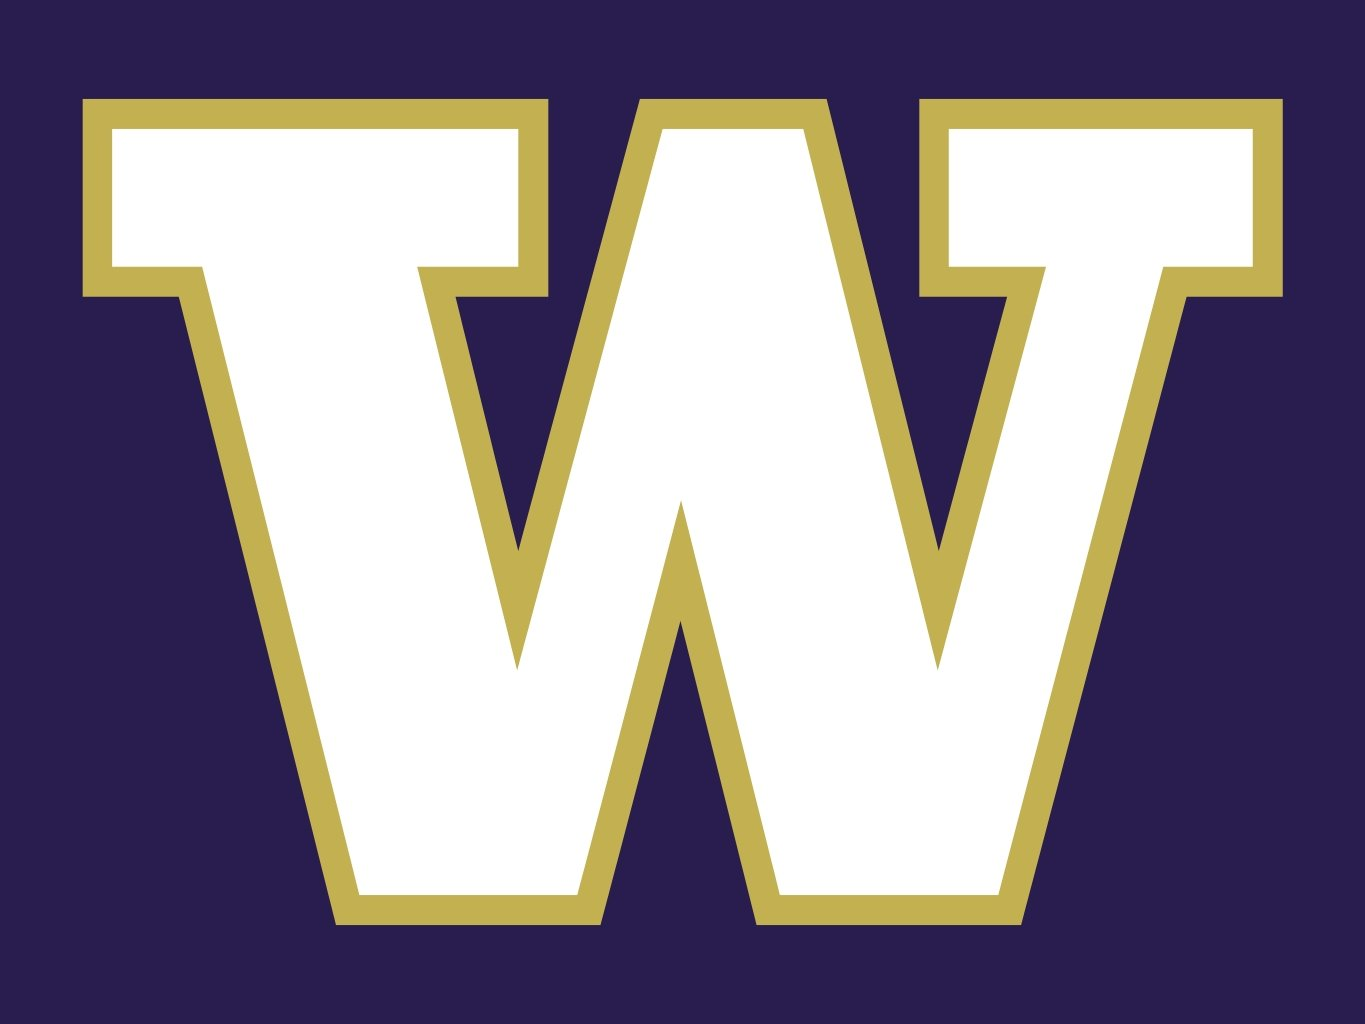 University Of Washington Huskies Wallpaper >> Washington Huskies Wallpaper - WallpaperSafari